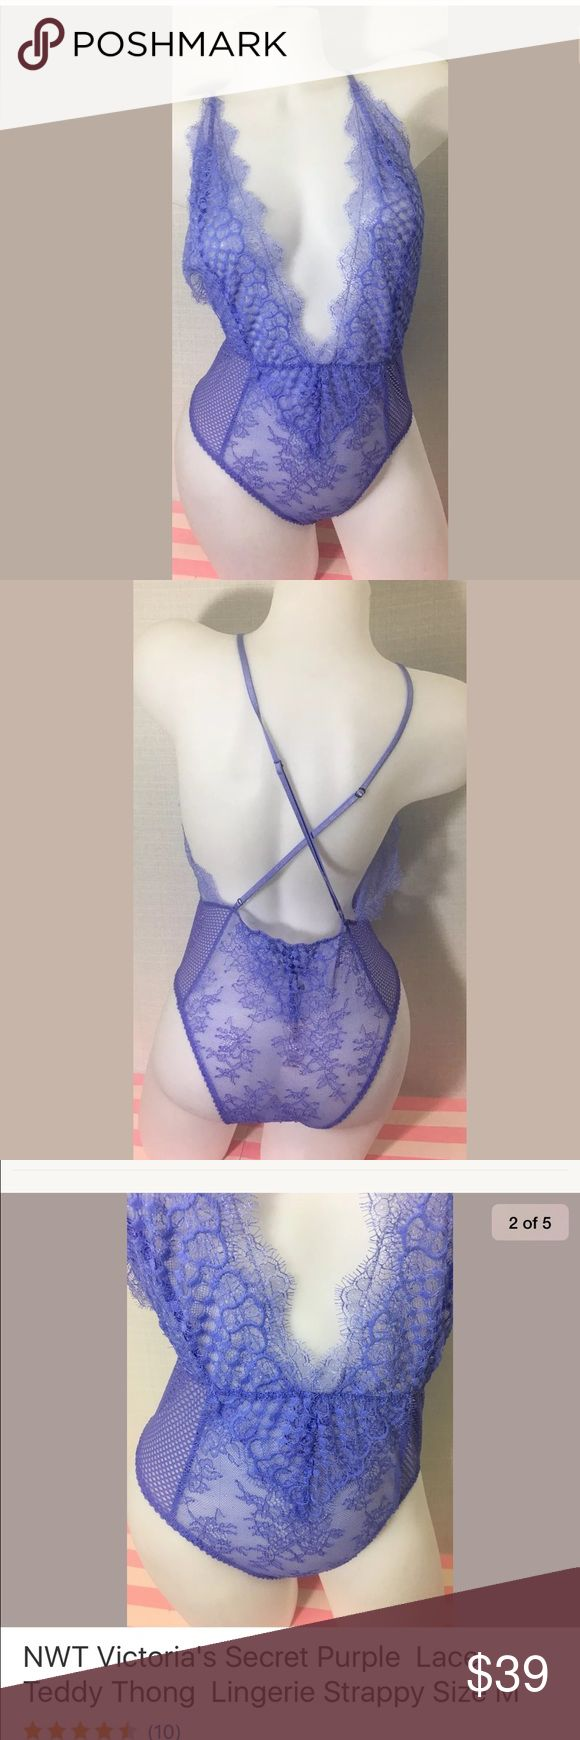 Victoria secret purple lace lingerie New with tags// purple lace teddy thong lingerie strappy// Victoria's Secret Intimates & Sleepwear